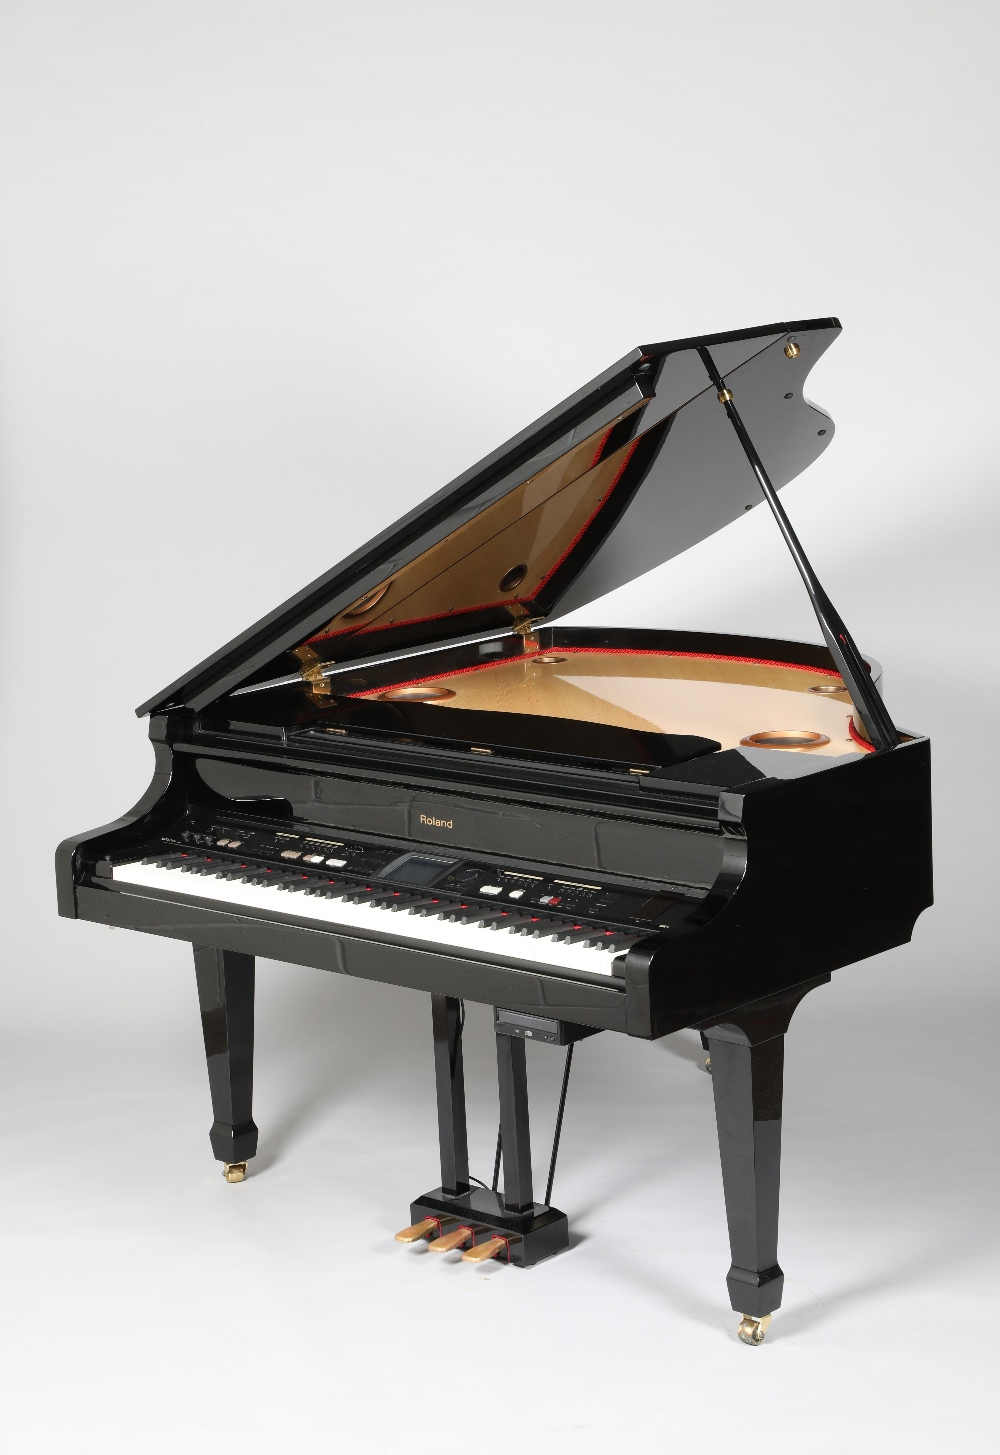 Roland KR117 digital intelligent grand piano, finished in black lacquer. The KR117 intelligent grand